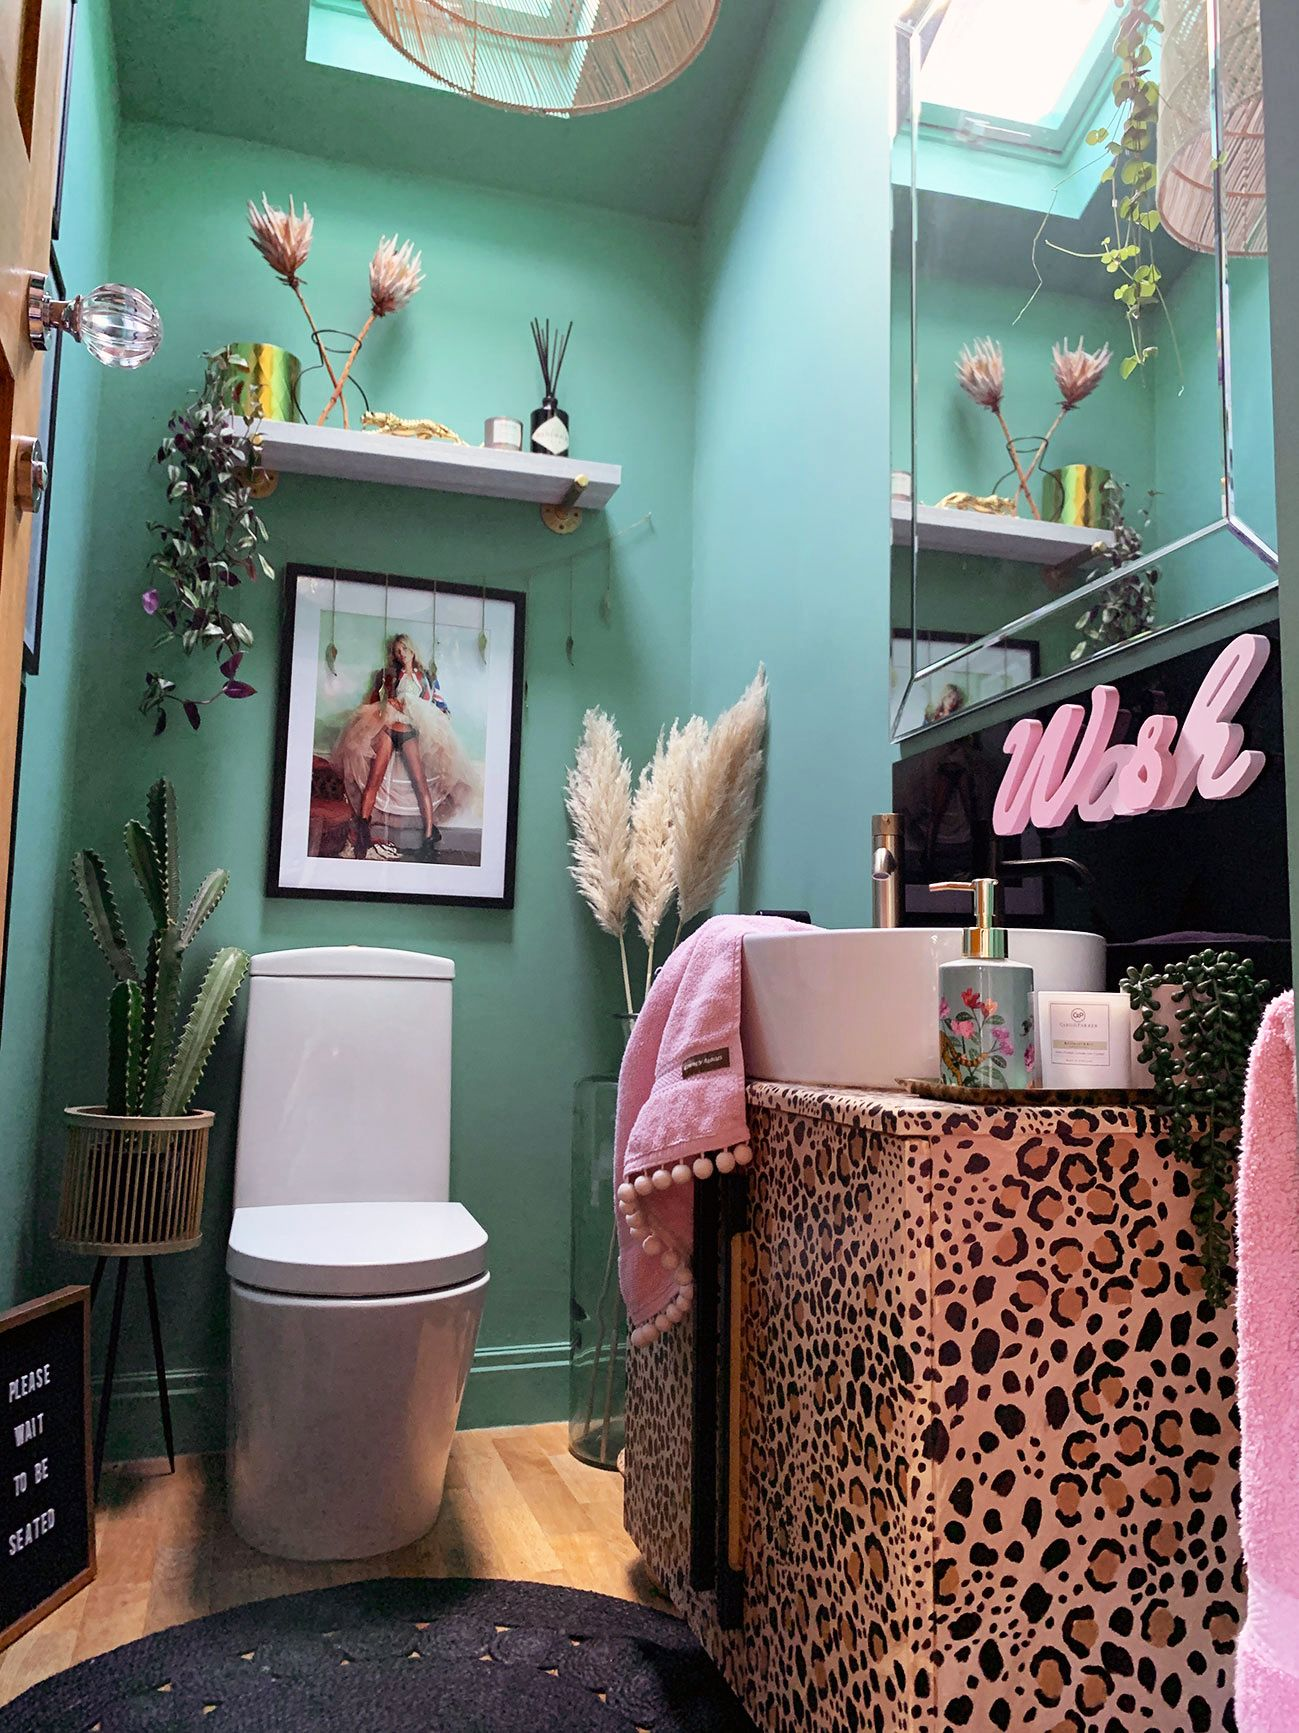 The Glamorous Colourful & Pattern Filled Home of Cara Baker | cloakroom downstairs toilet that uses fun colour, pattern and accessories to make an impact. #cloakroom #powderroom #downstairsloo #decor #homedecor #eclecticdecor #interiordesign #eclecticinteriors #leopardprintdecoor #homedesign #fundecor #interiorinspo #eclectiichome